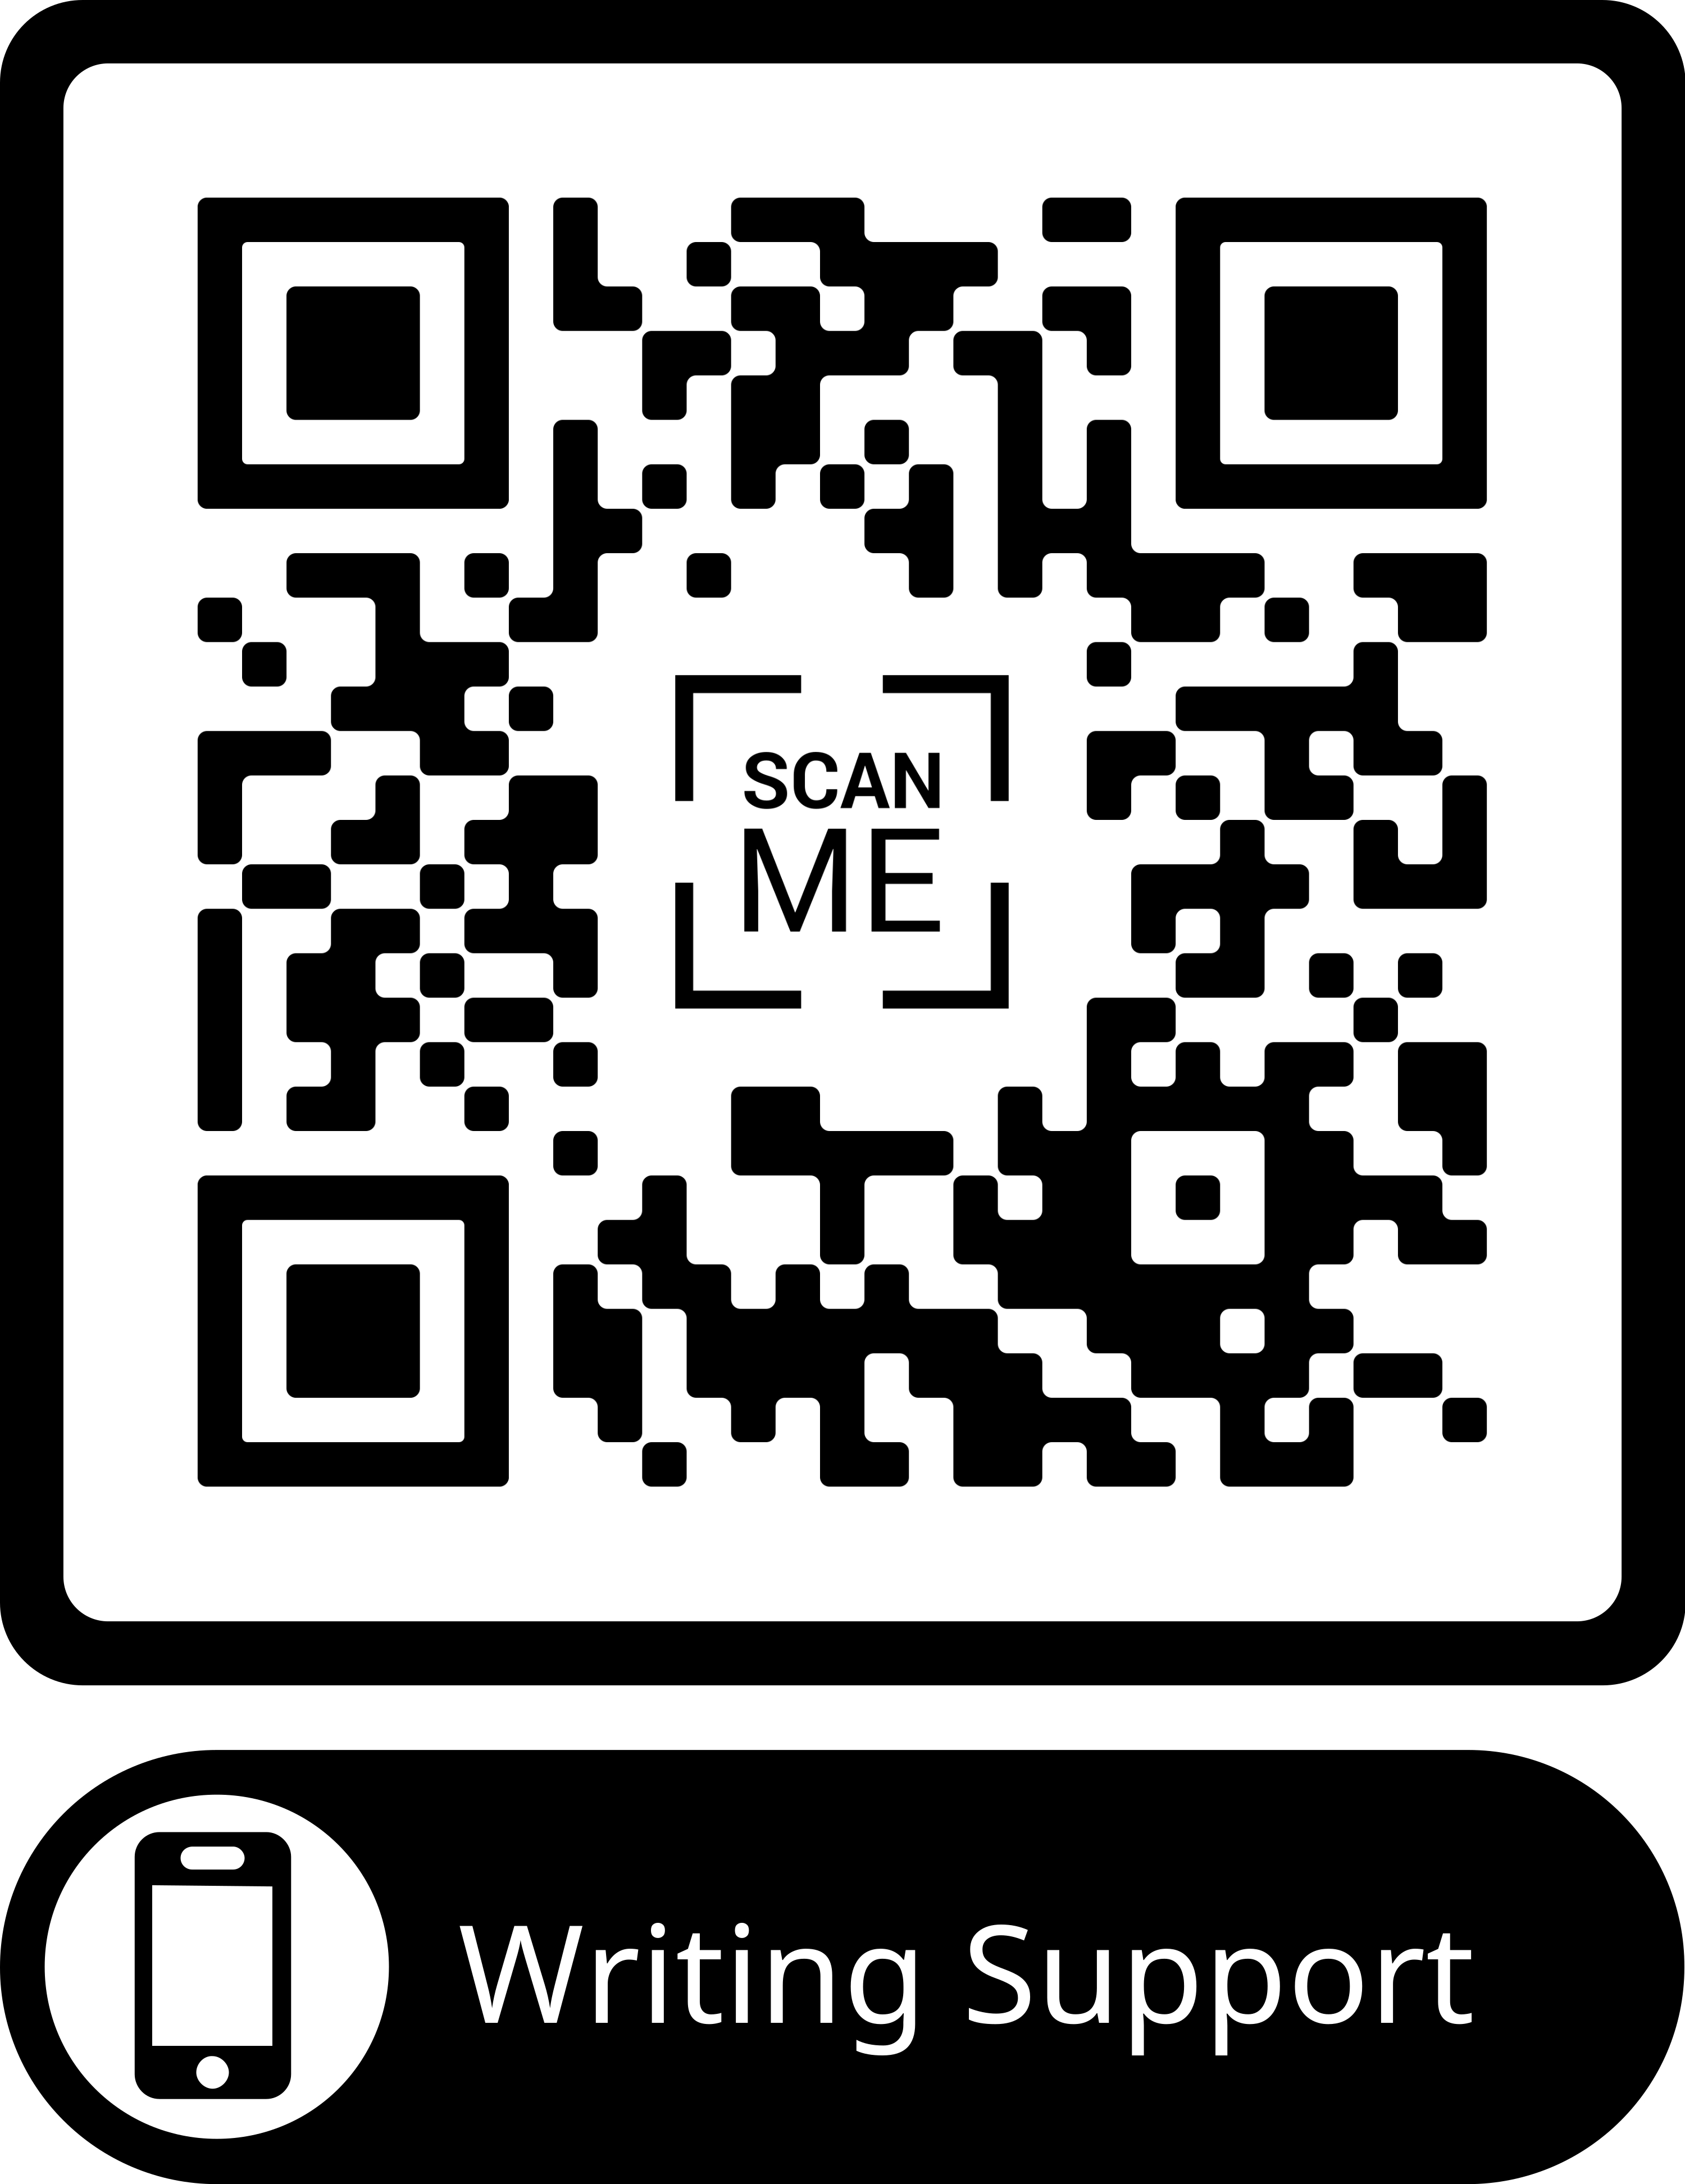 QR Code for Writing Support